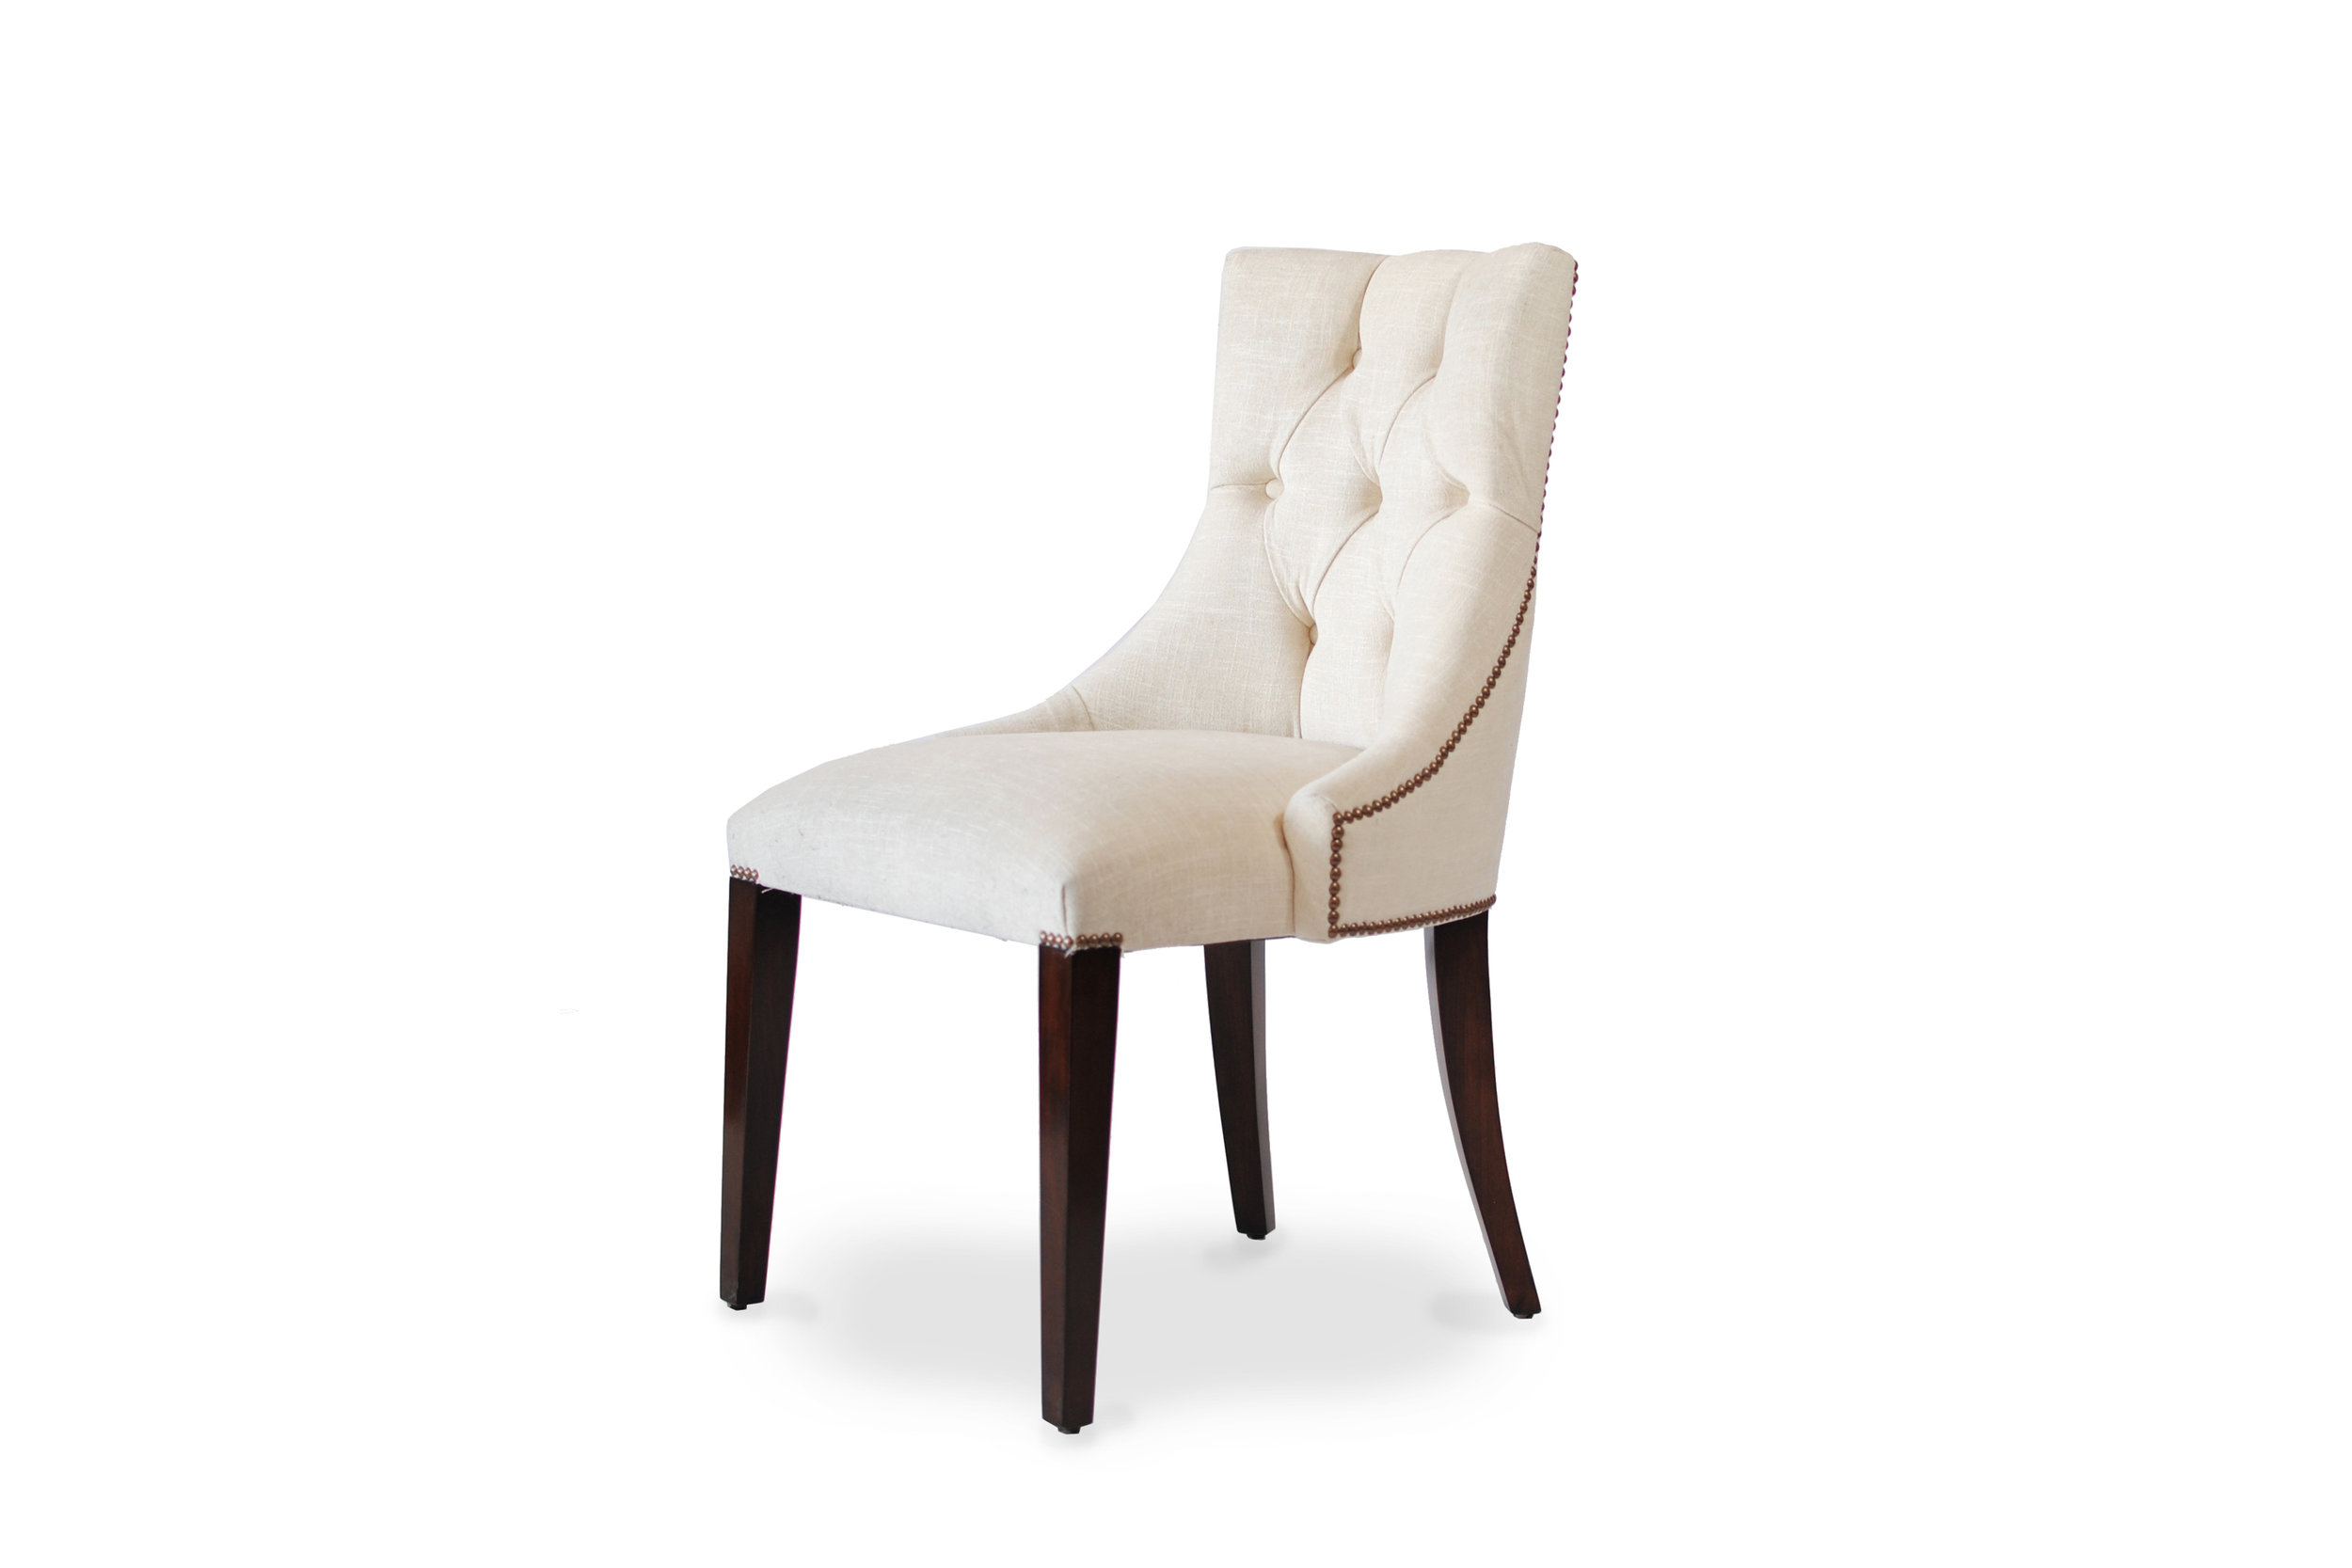 CARLTON CHAIR